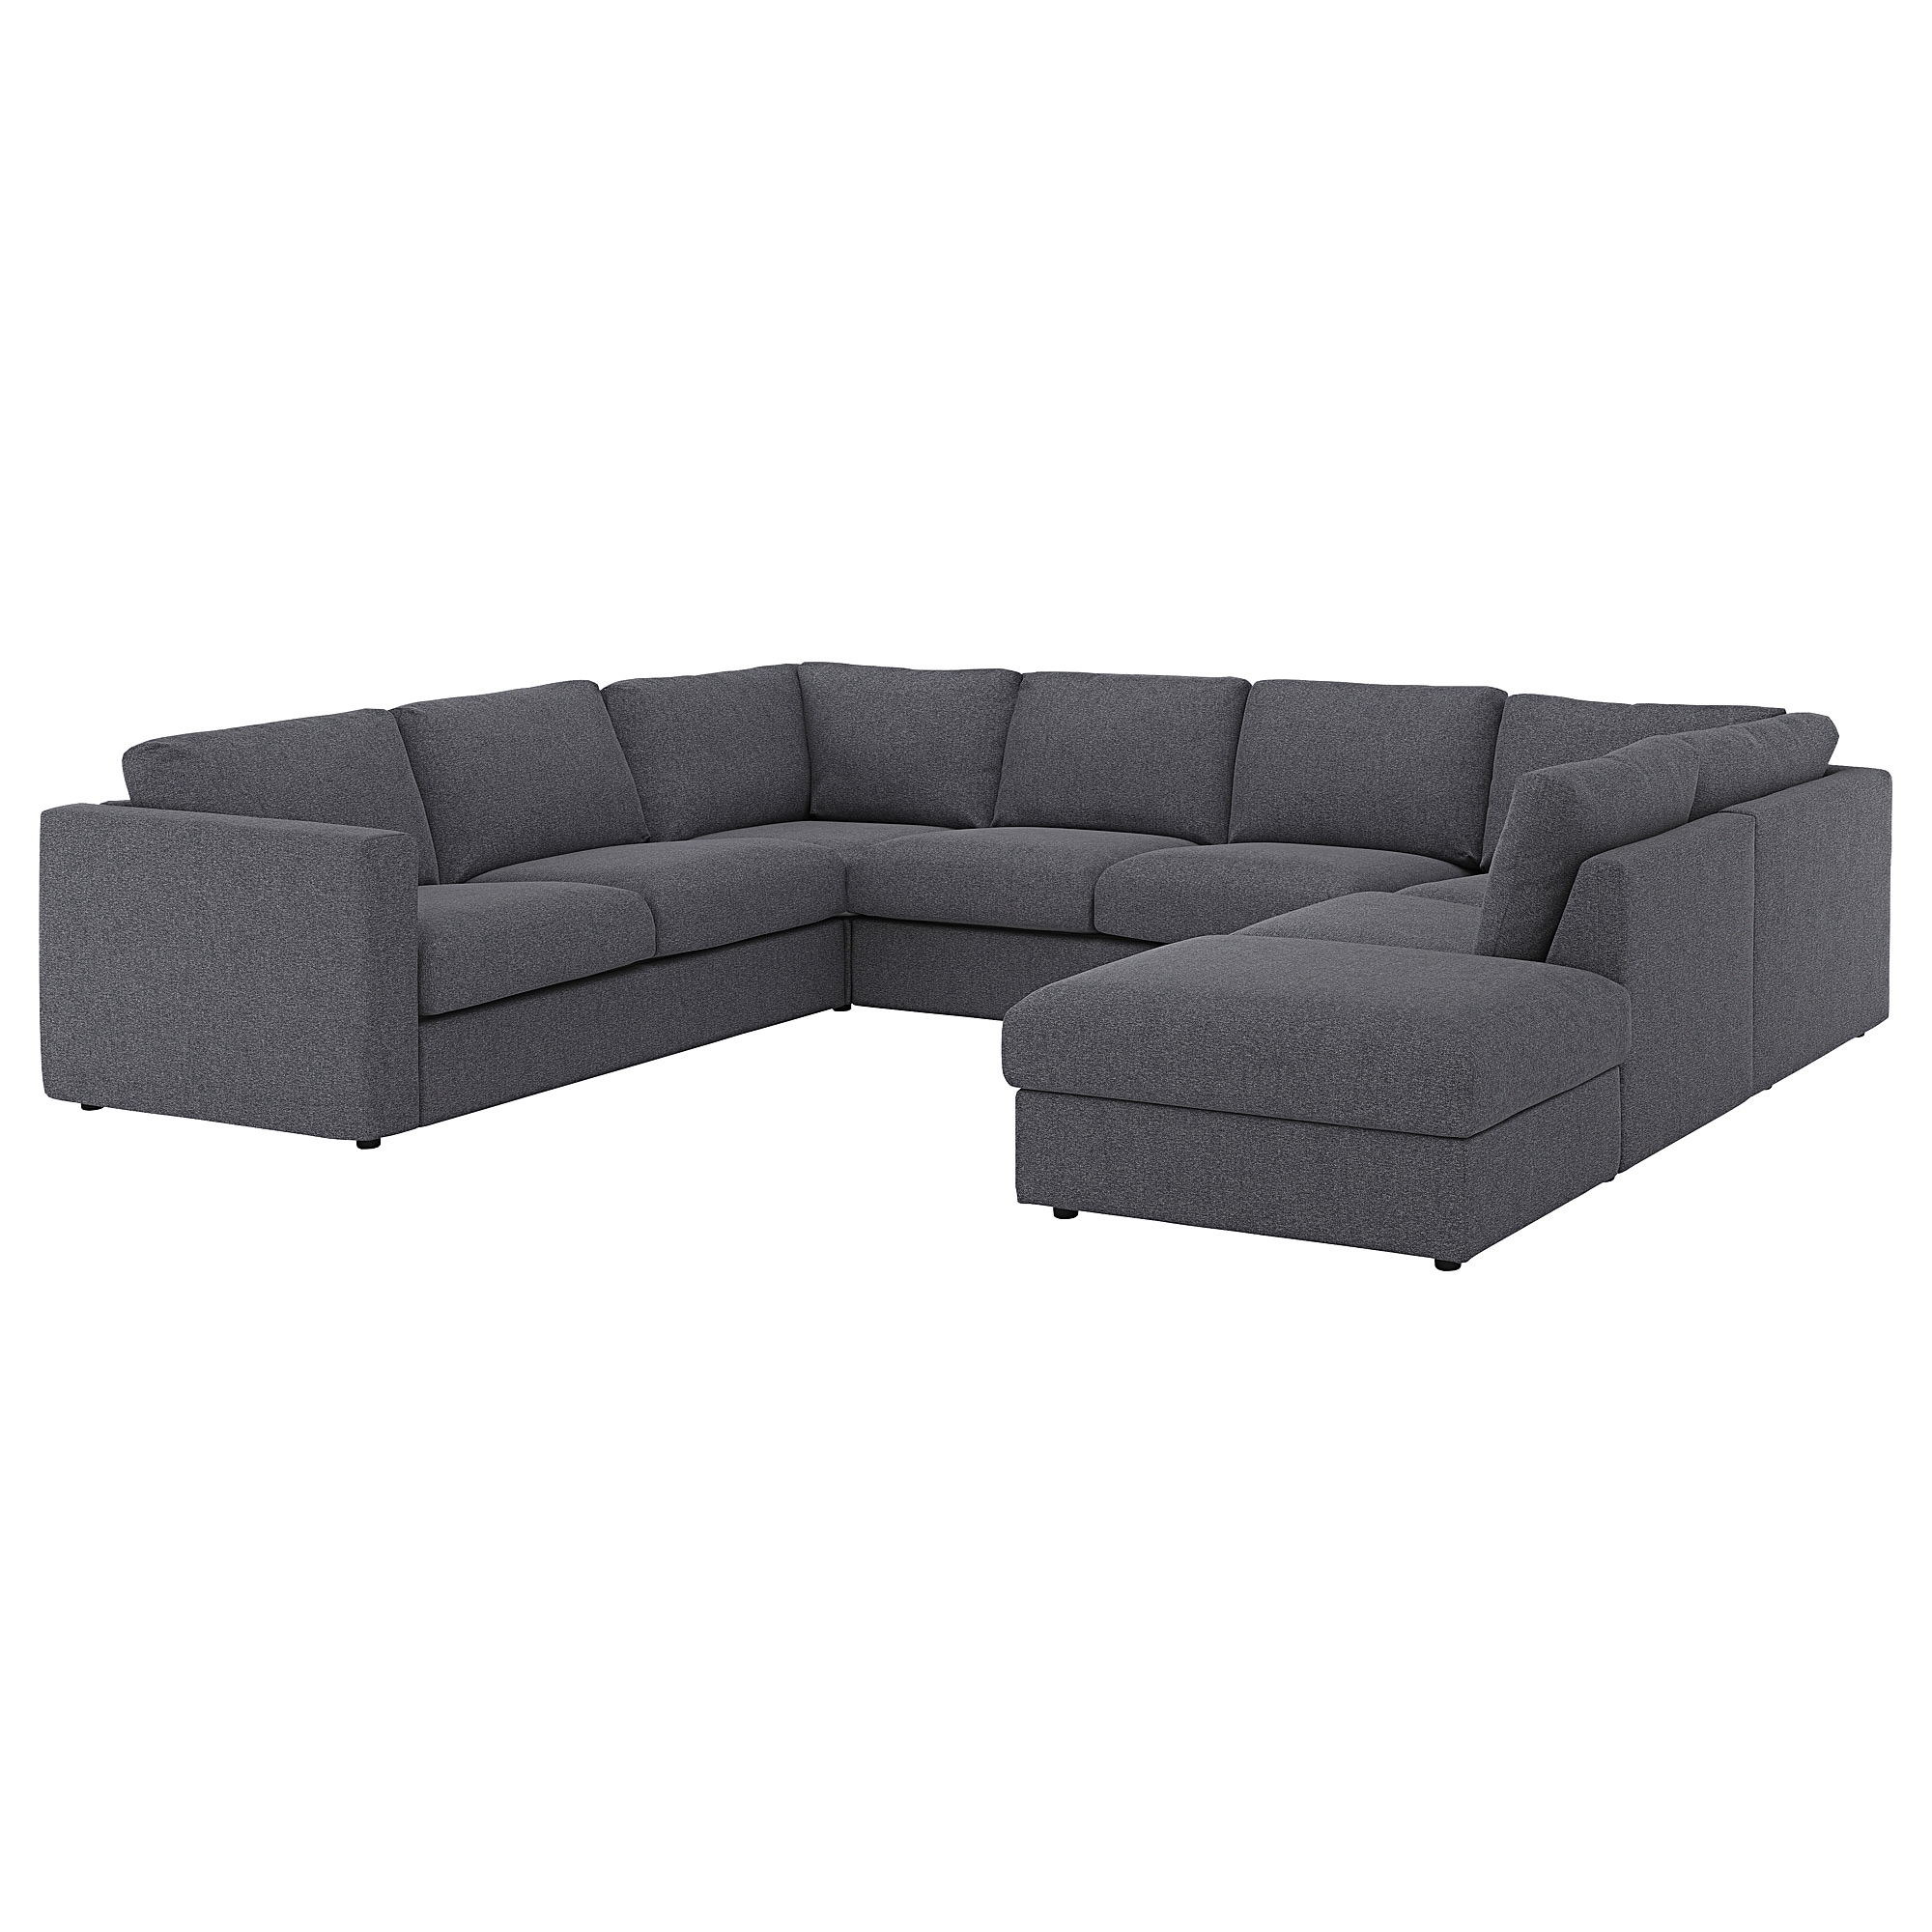 U Bank Met Sofa